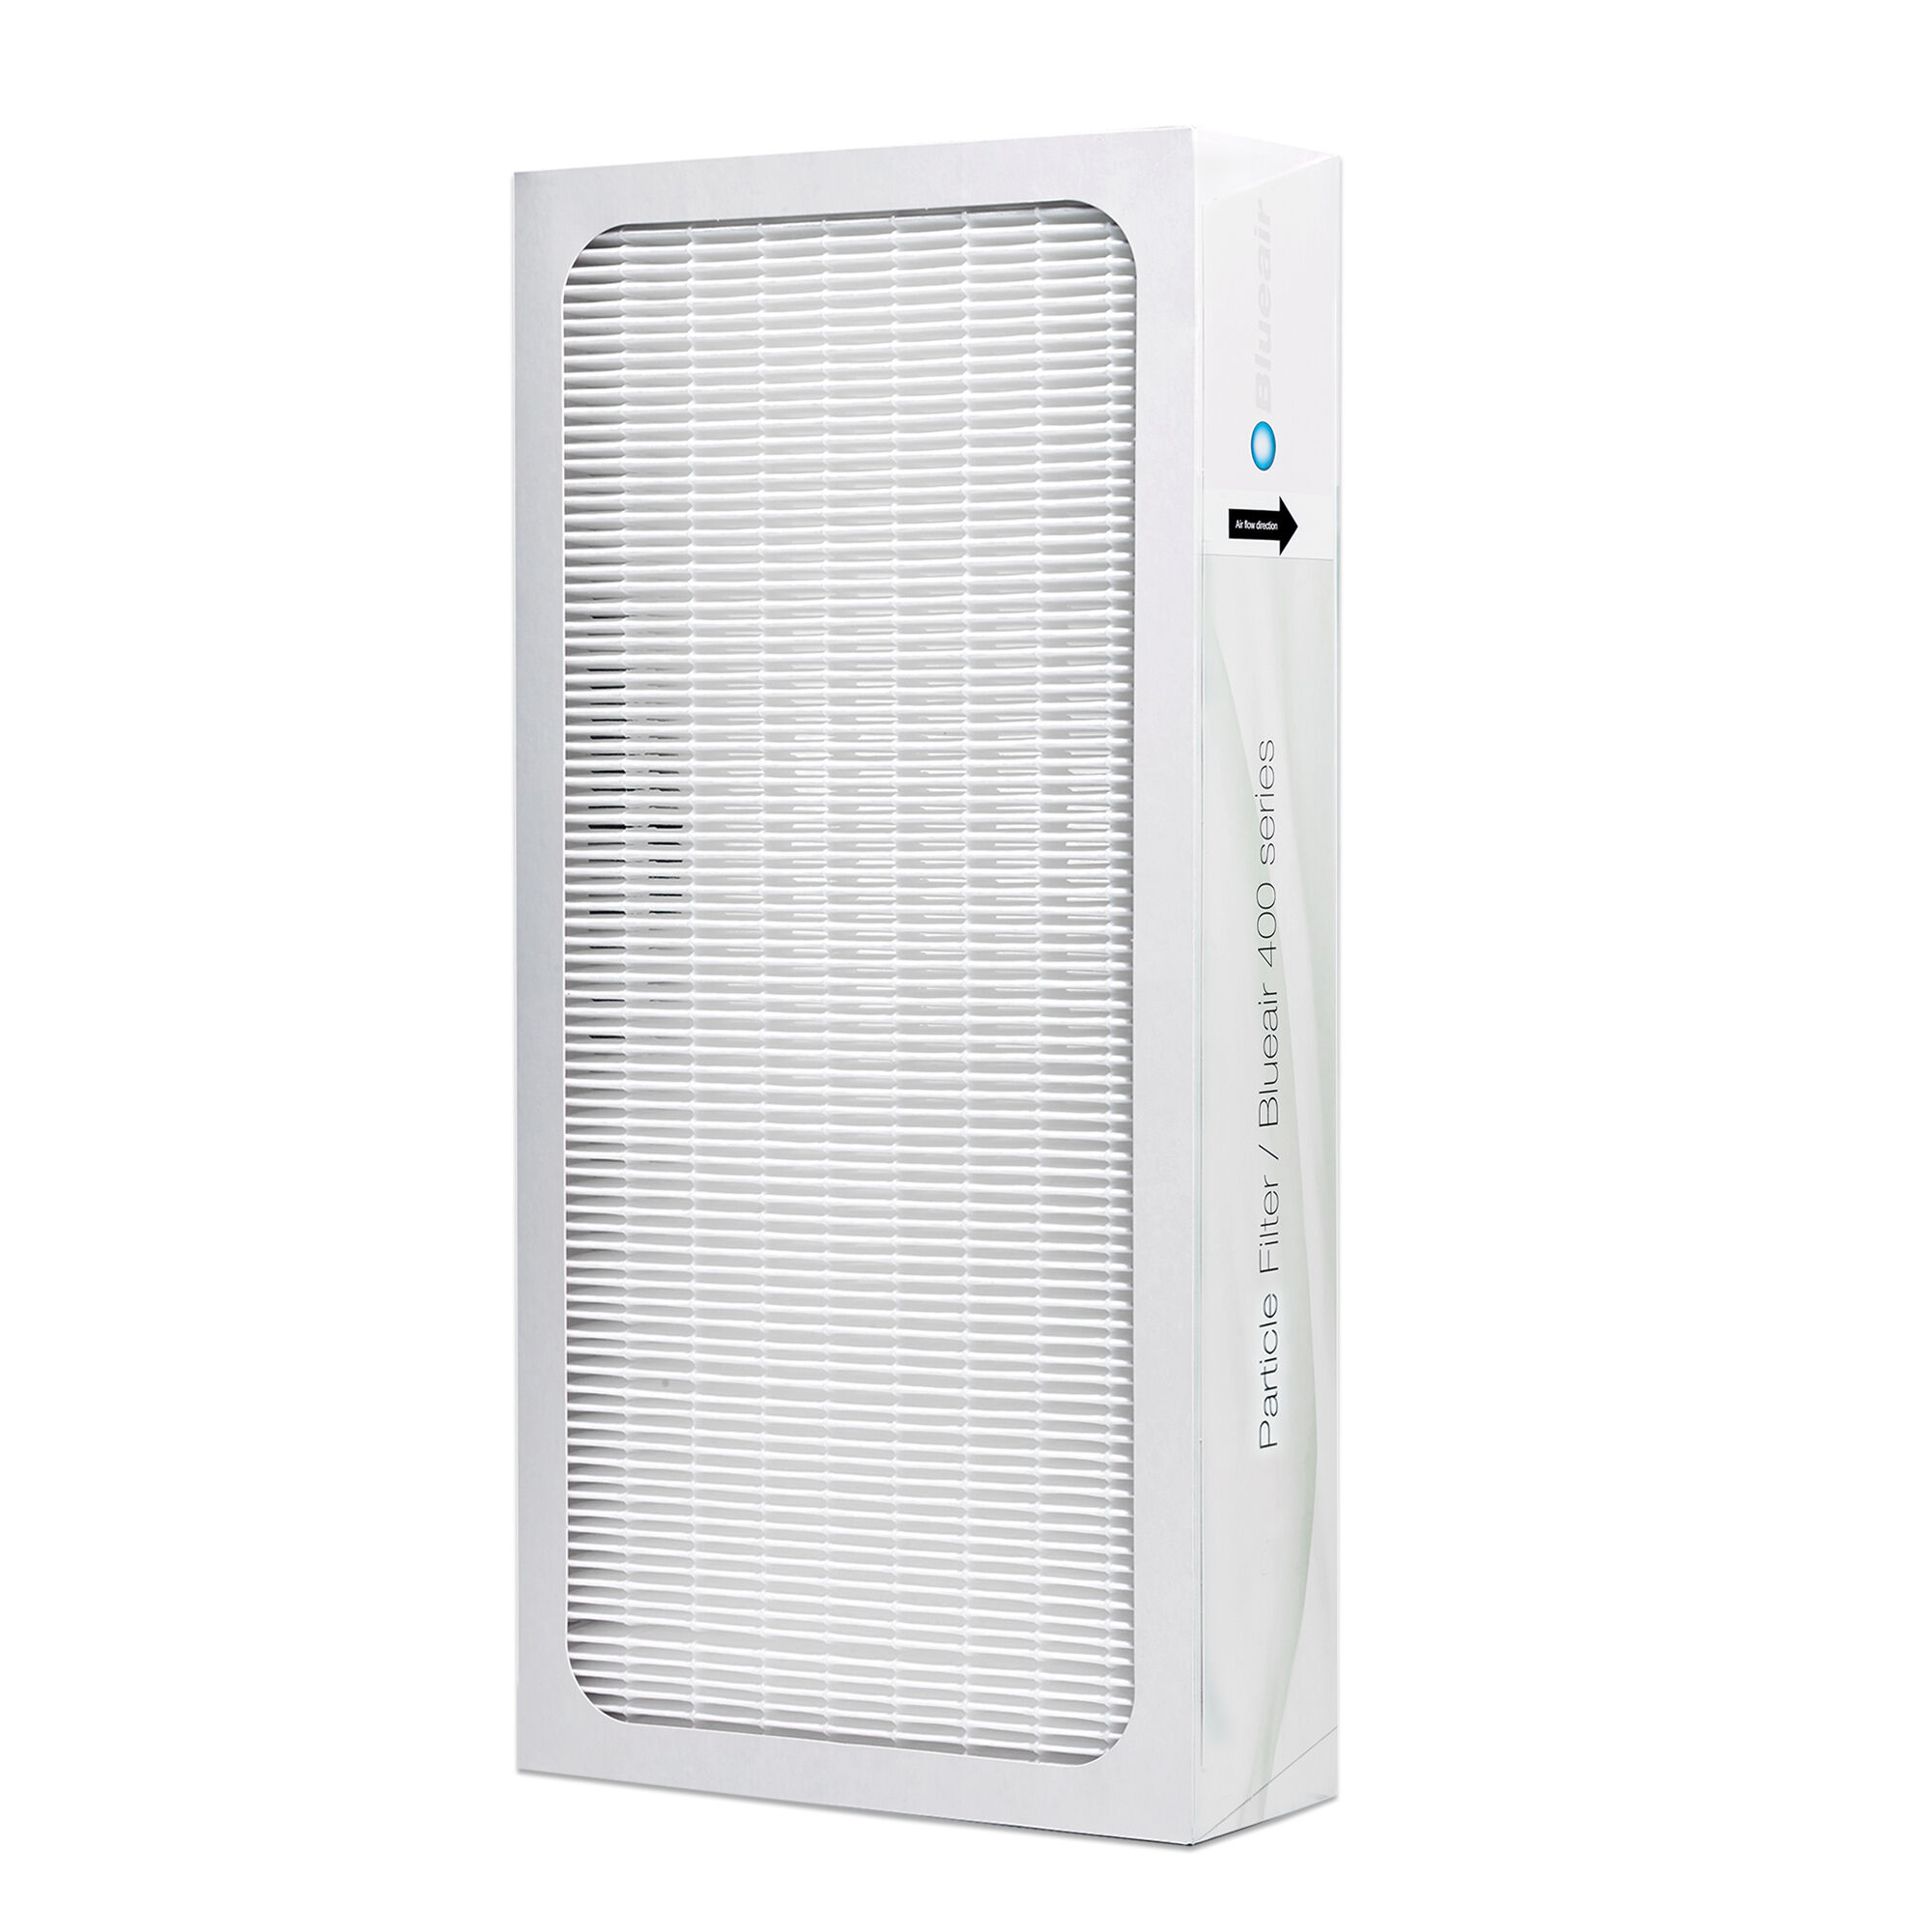 400 Series Particle Filter Air Purifier Accessory Compatible Blueair Best New